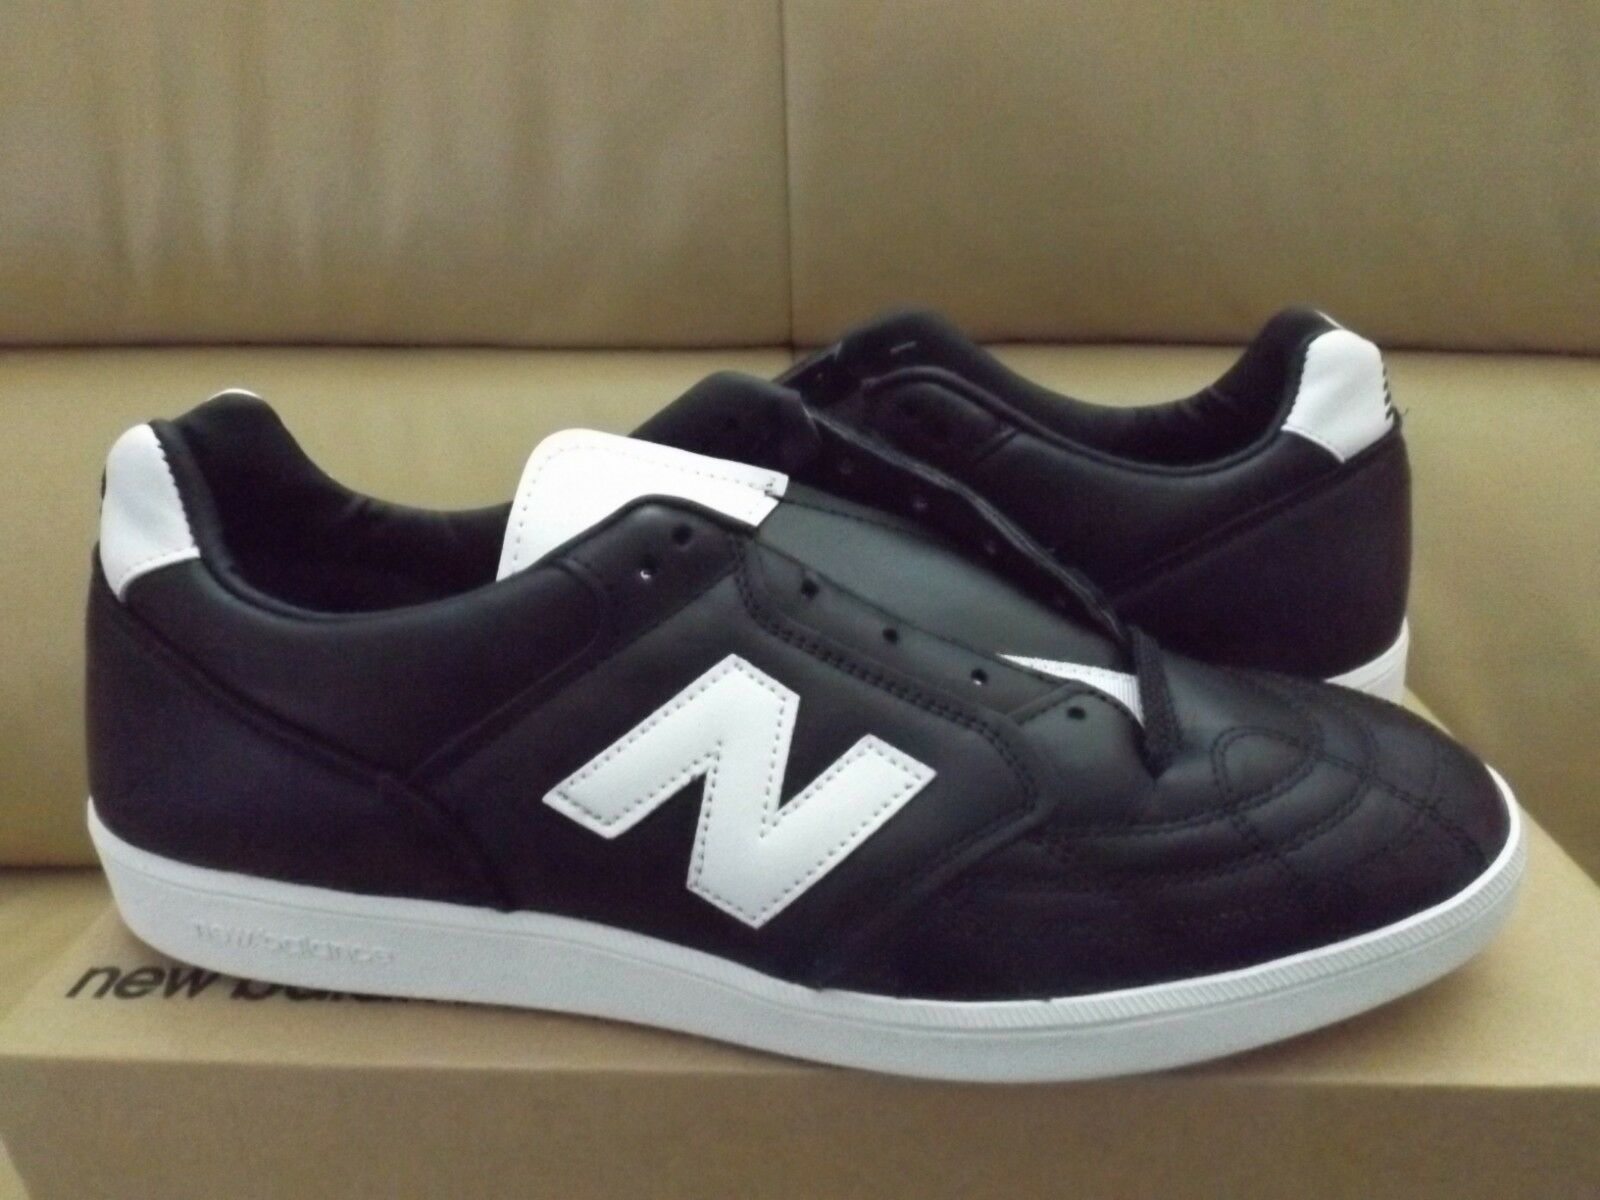 New Balance Epic Tr Lifestyle Men's Size 12 Made in UK Football EPICTRFB Black